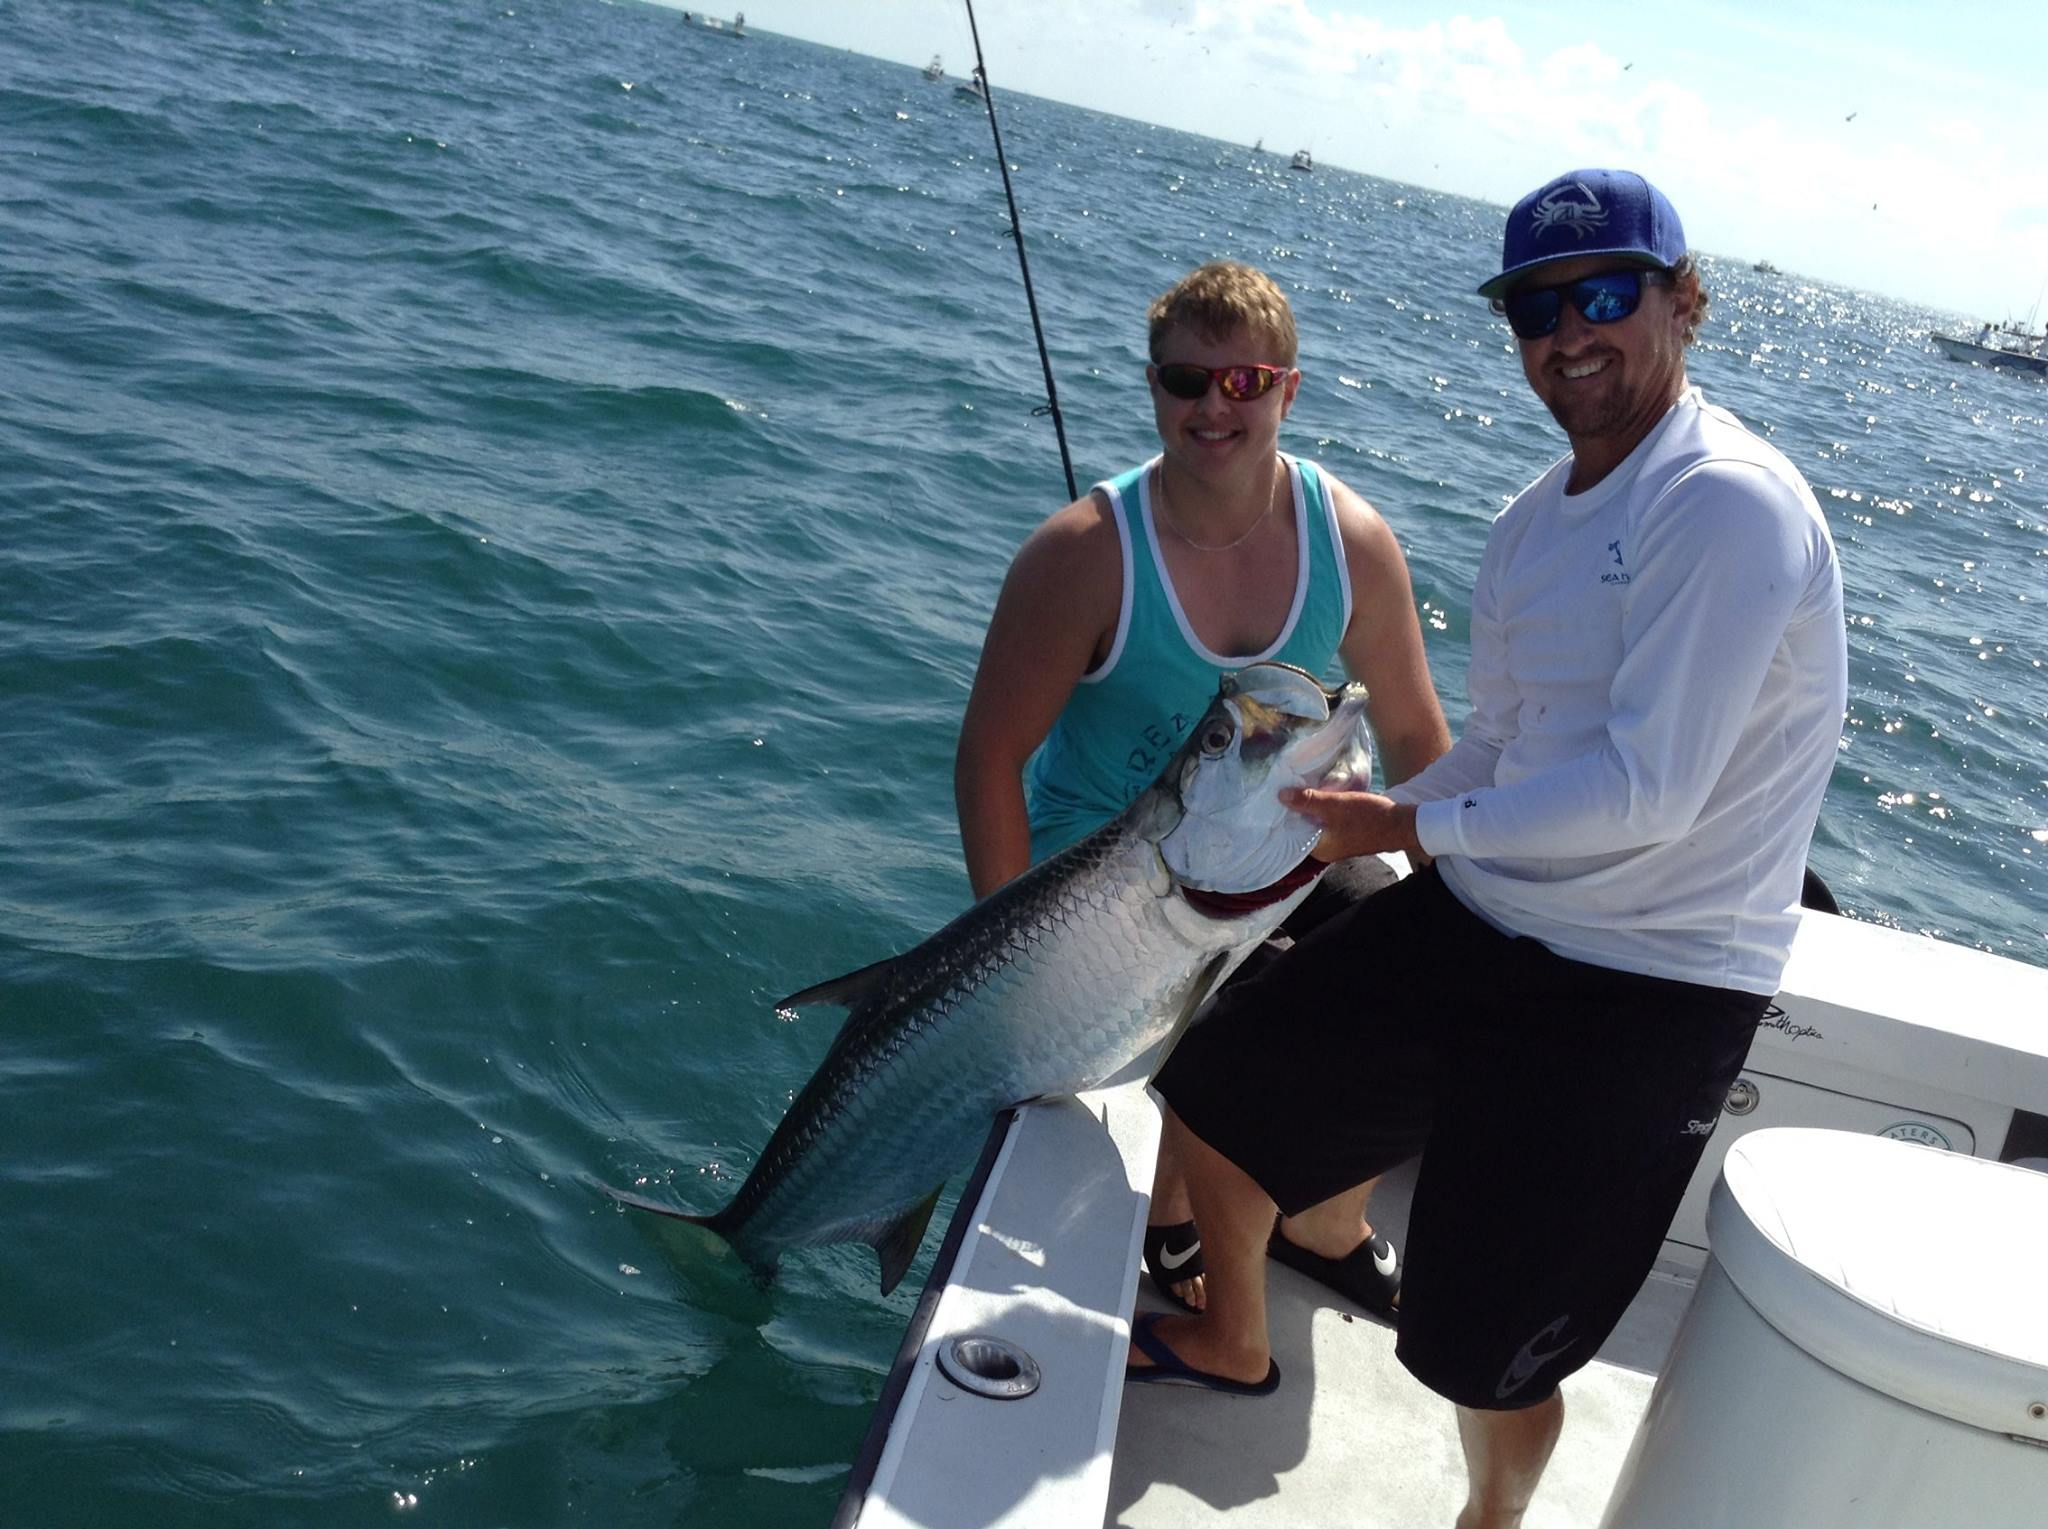 Tarpon fishing charters fishing guides tampa bay fl for Tarpon fishing charters